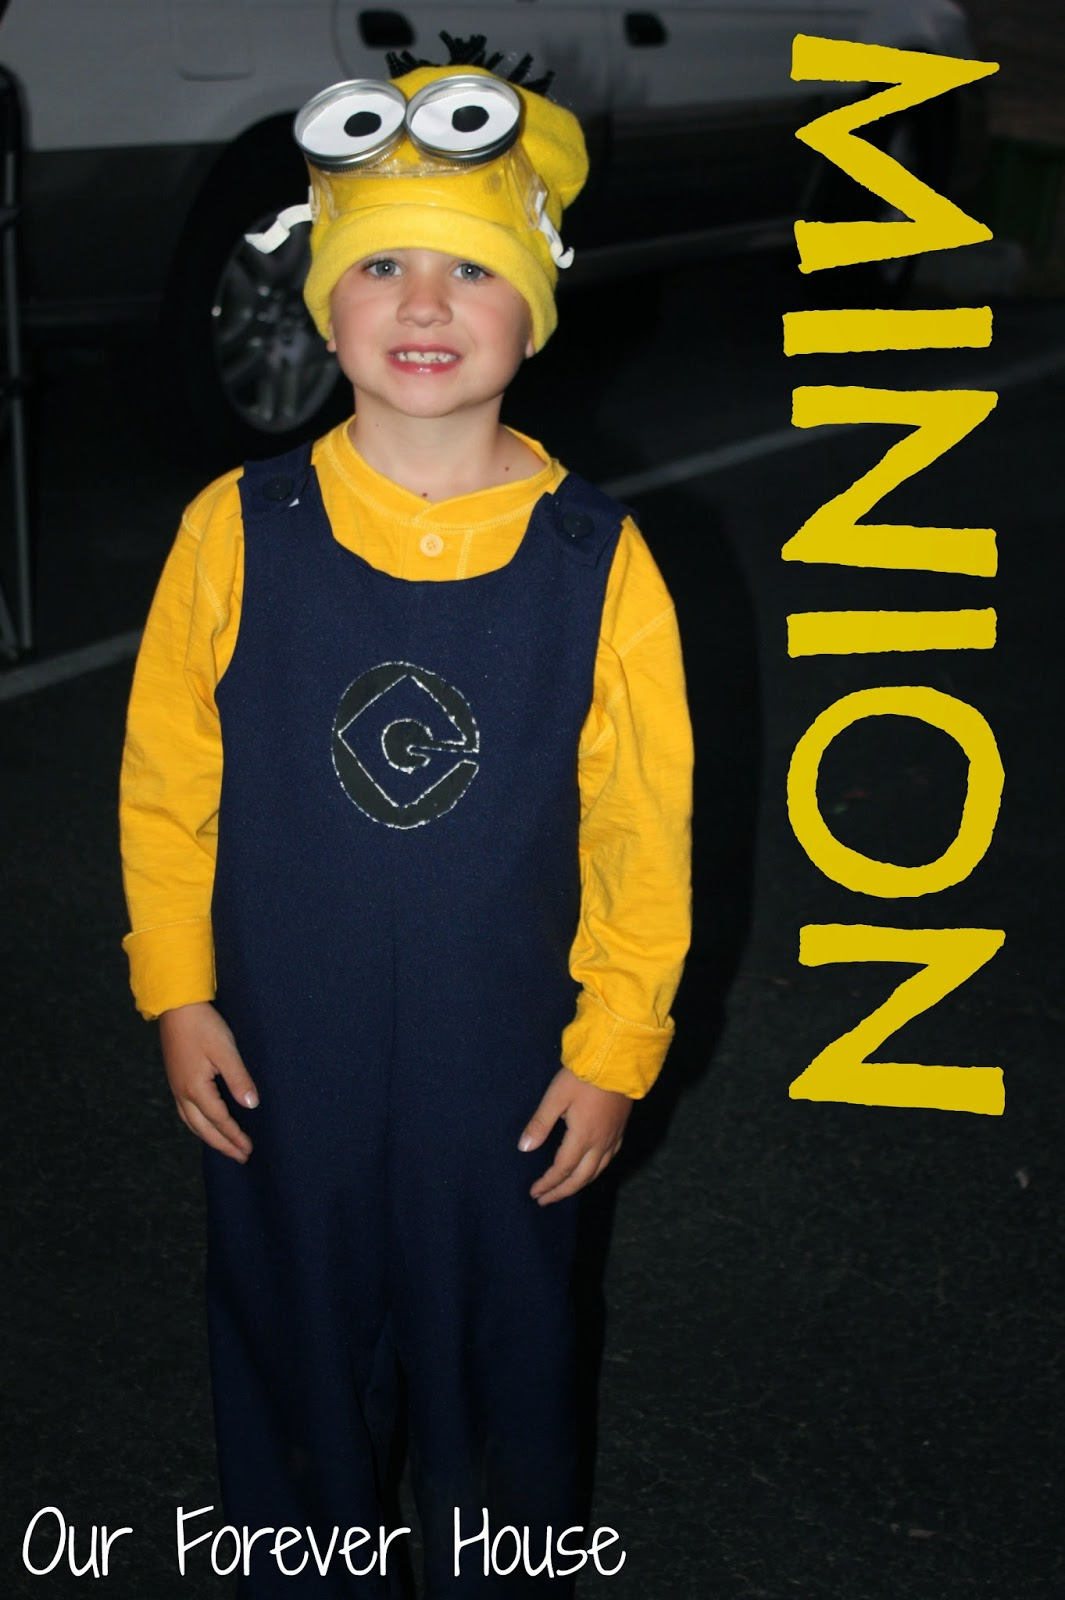 Our Forever House: Halloween Minion